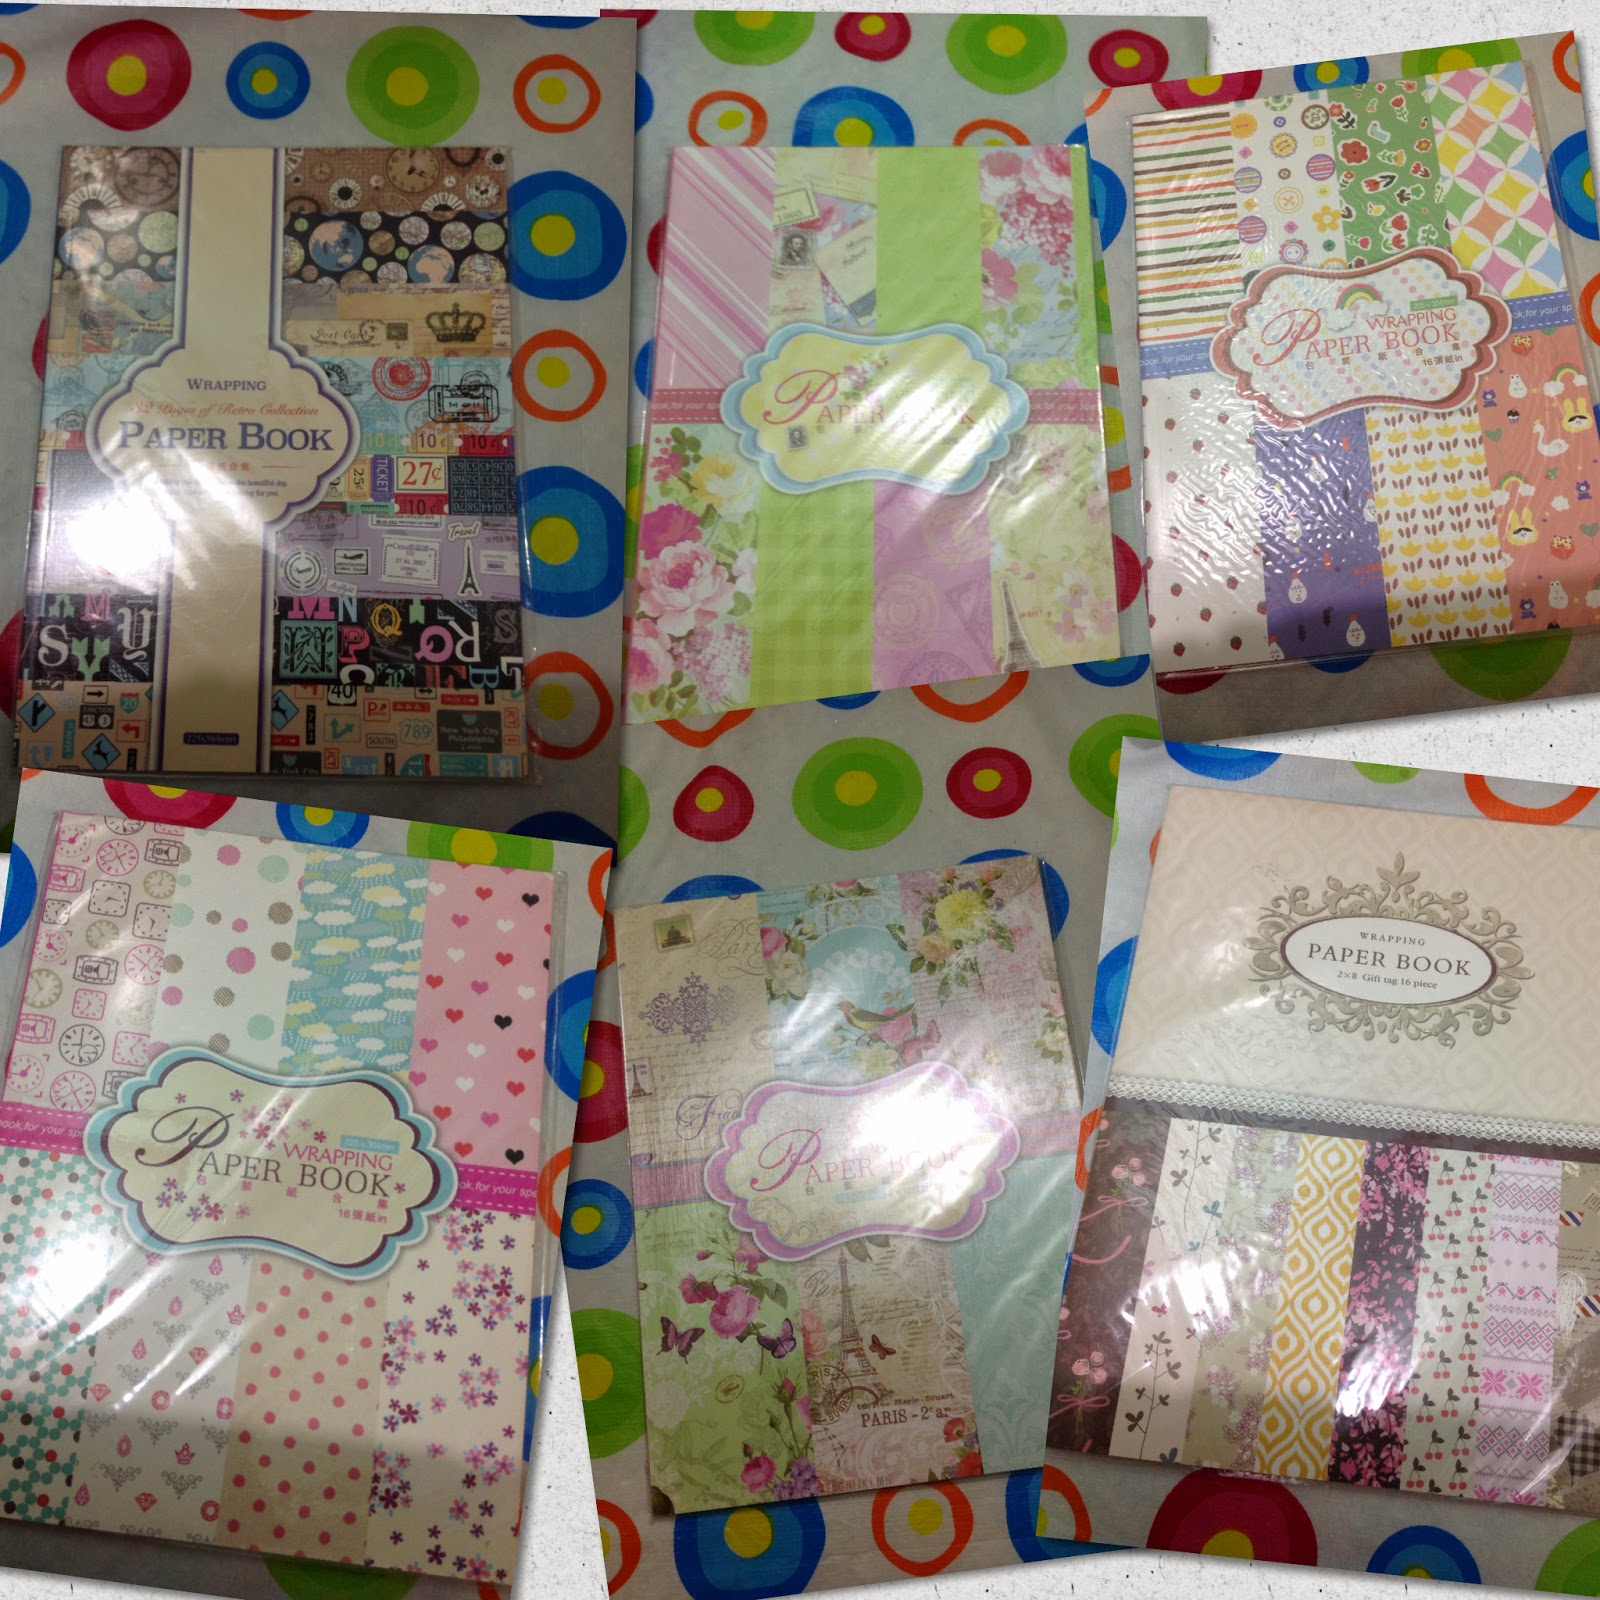 Scrapbook paper books - Wrapping Paper Books My Heart Jumped When I Saw These Right Now I Have A Lot Of Projects In My Mind That I Want To Make Using These Beauties